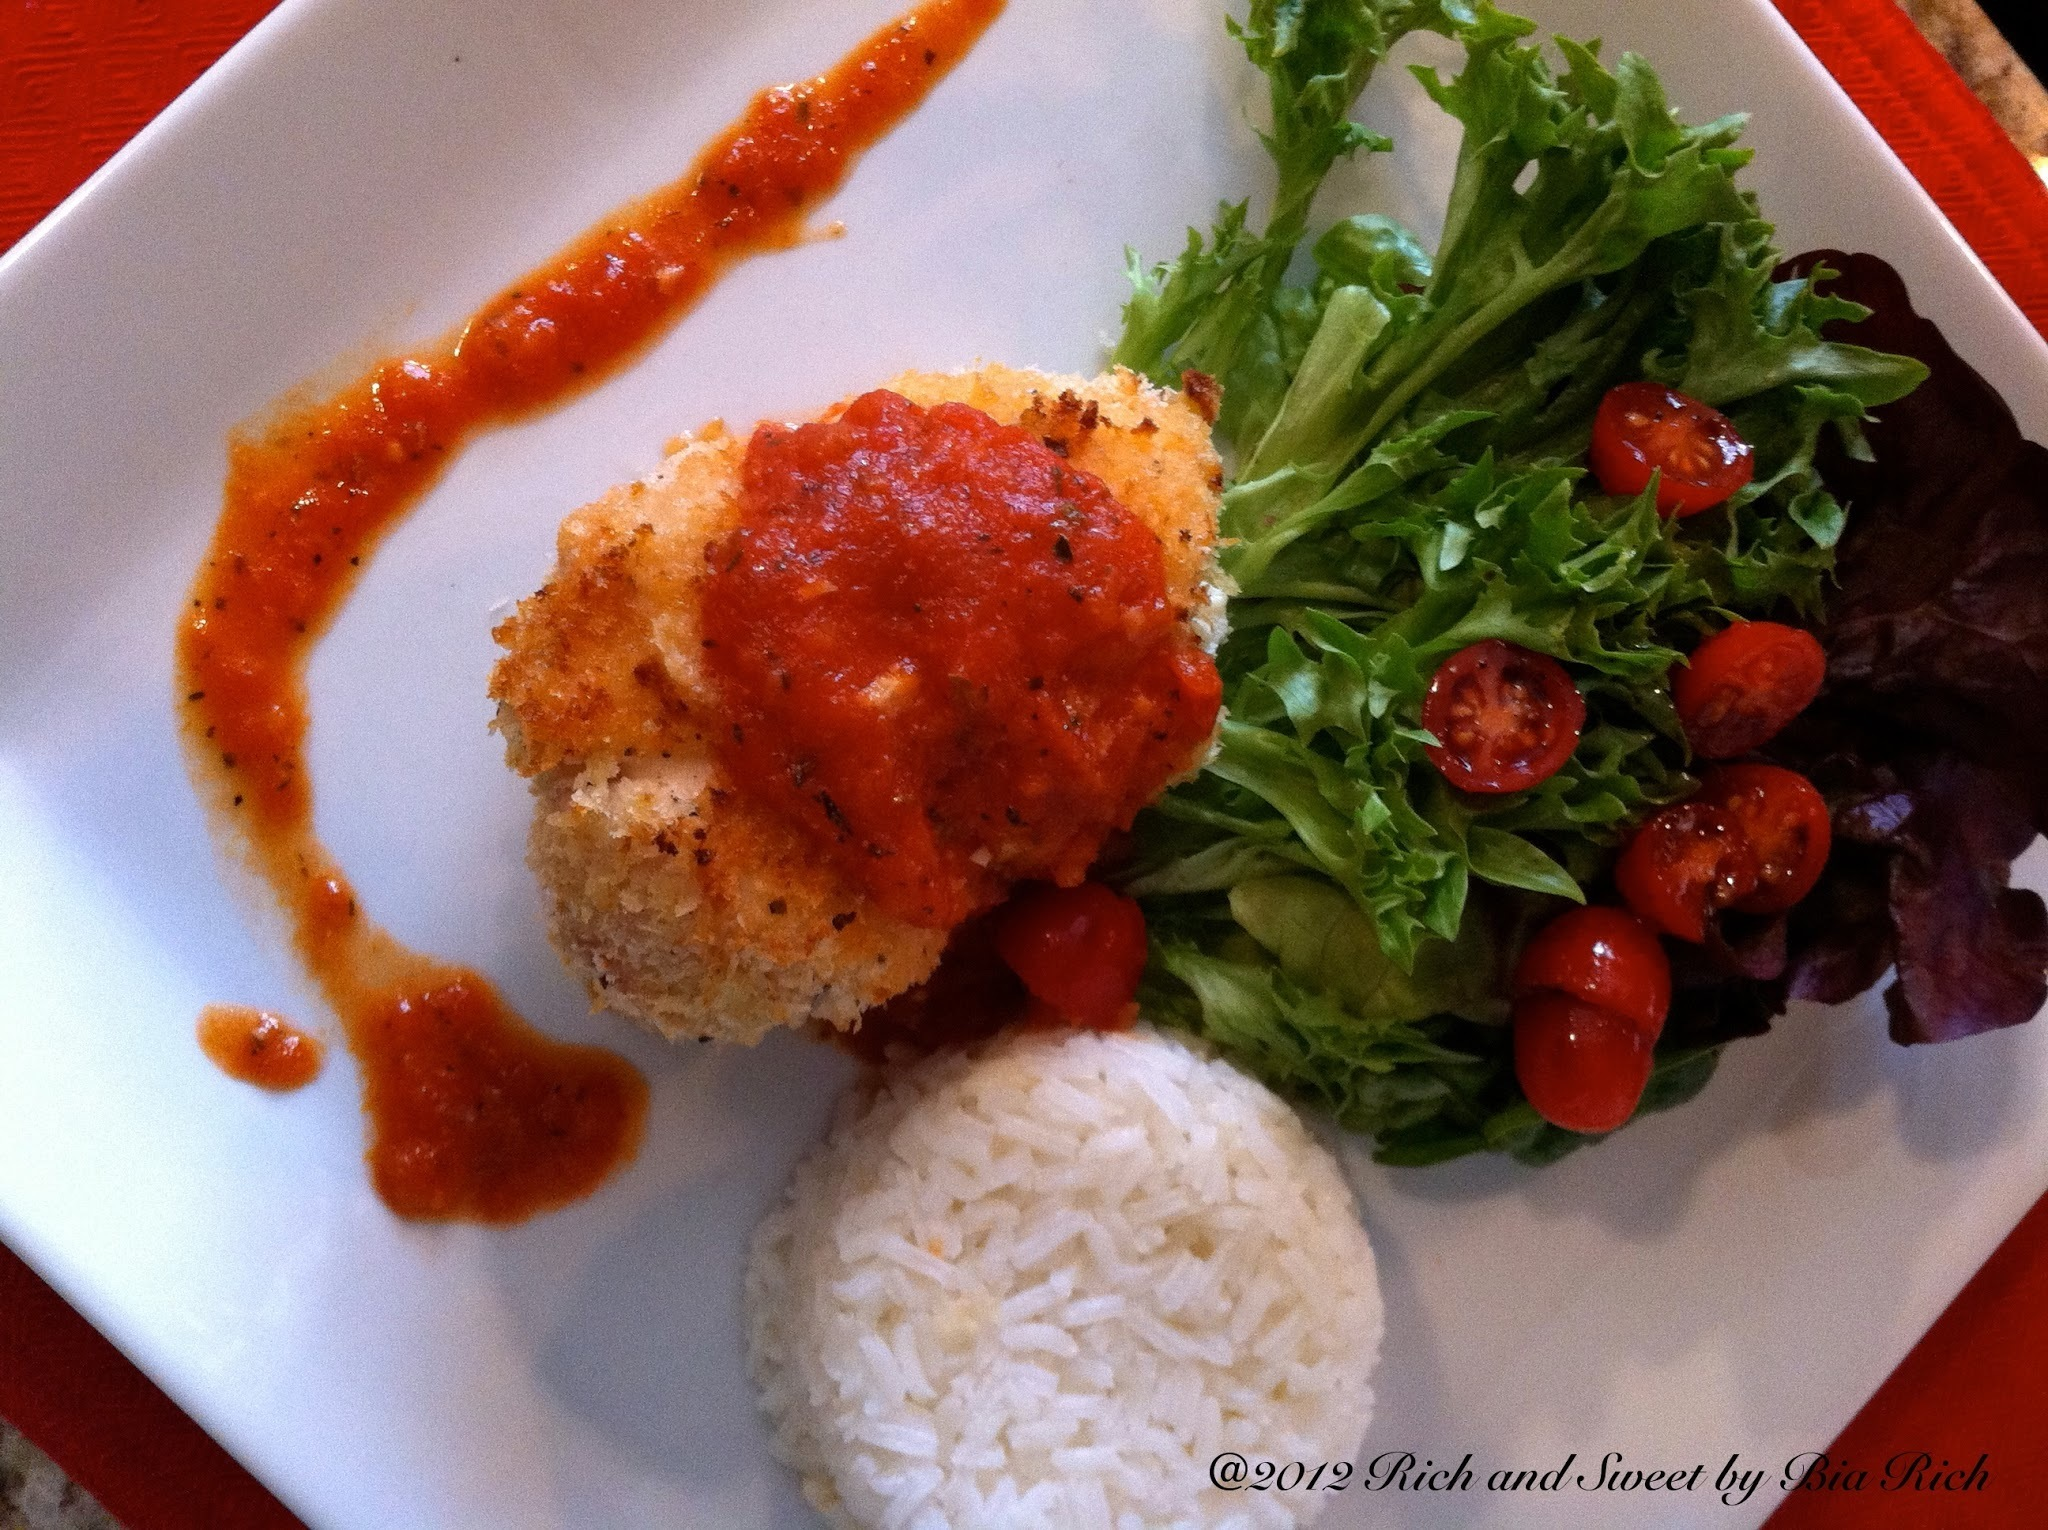 Fresh Mozzarella and Broccoli Stuffed Panko Baked Chicken Cutlets with Marinara Sauce